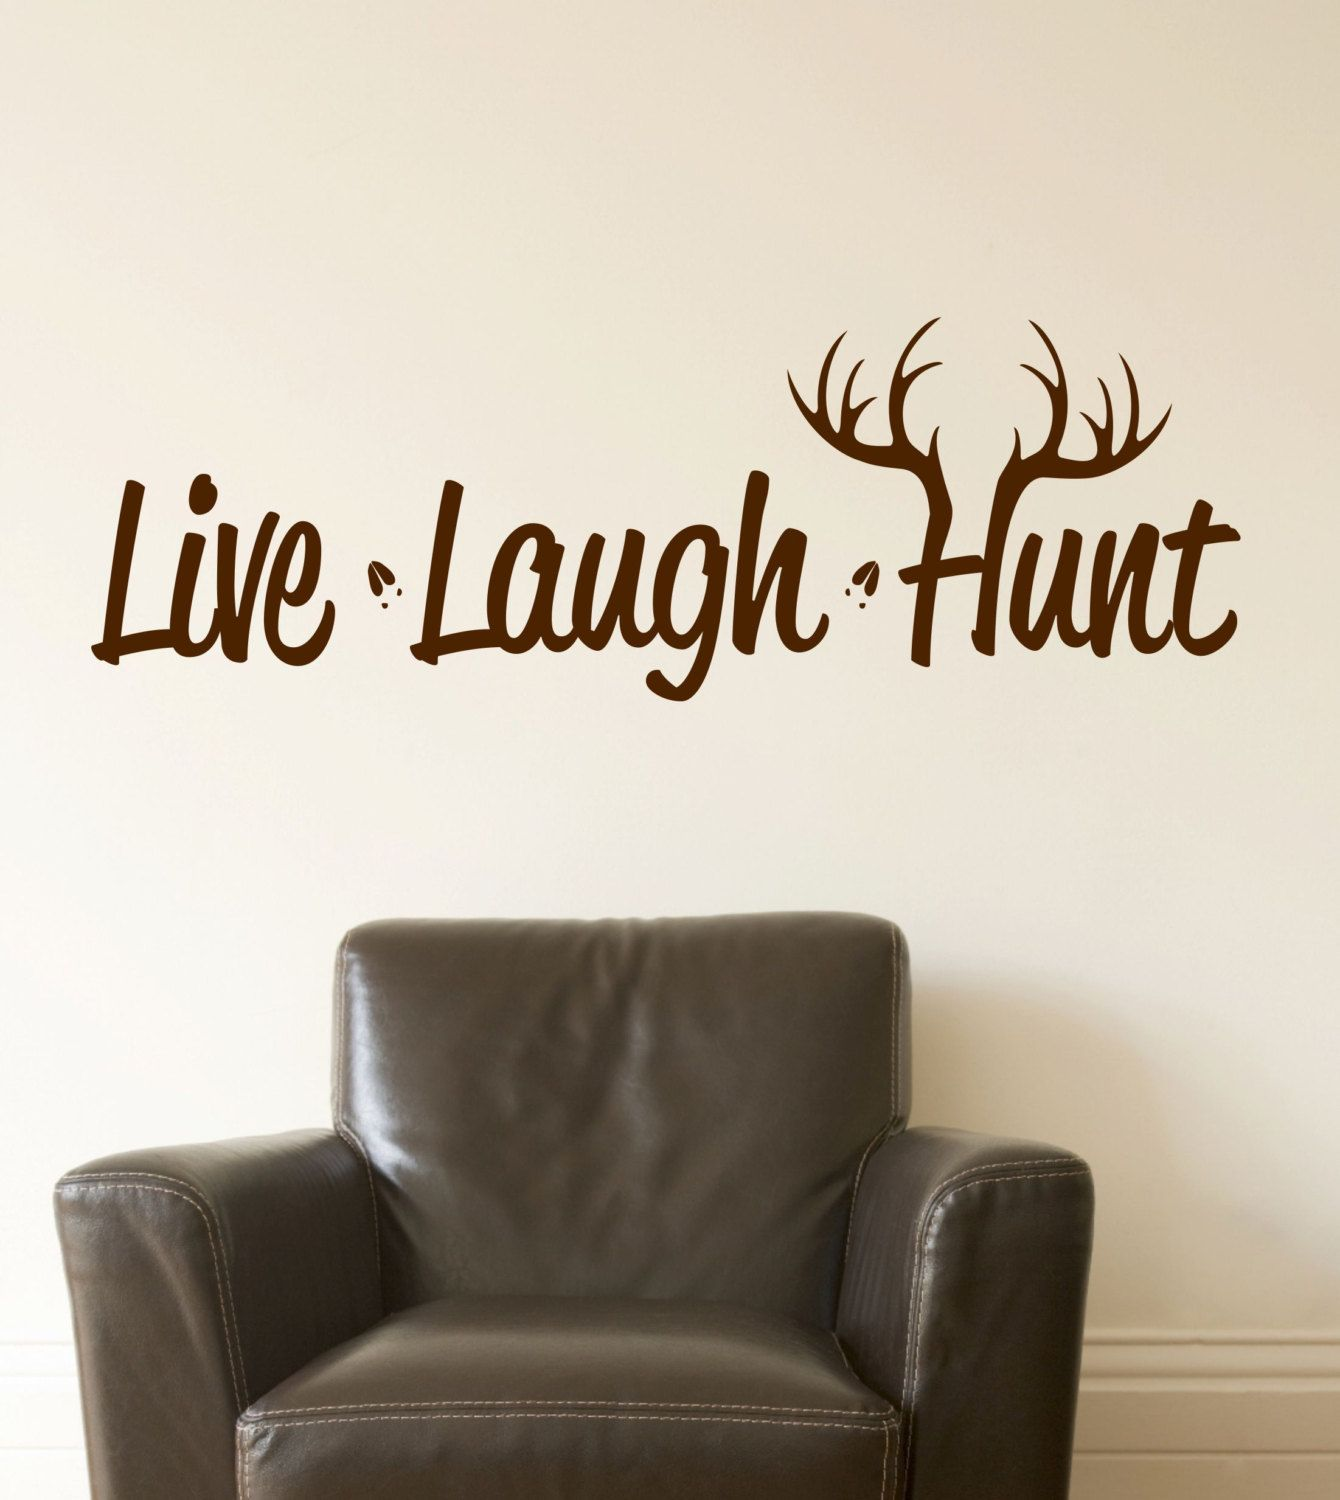 Live Laugh Hunt Wall Decal - Hunting Decor - Deer Antler Decal - Live Laugh  Hunt Vinyl Wall Art